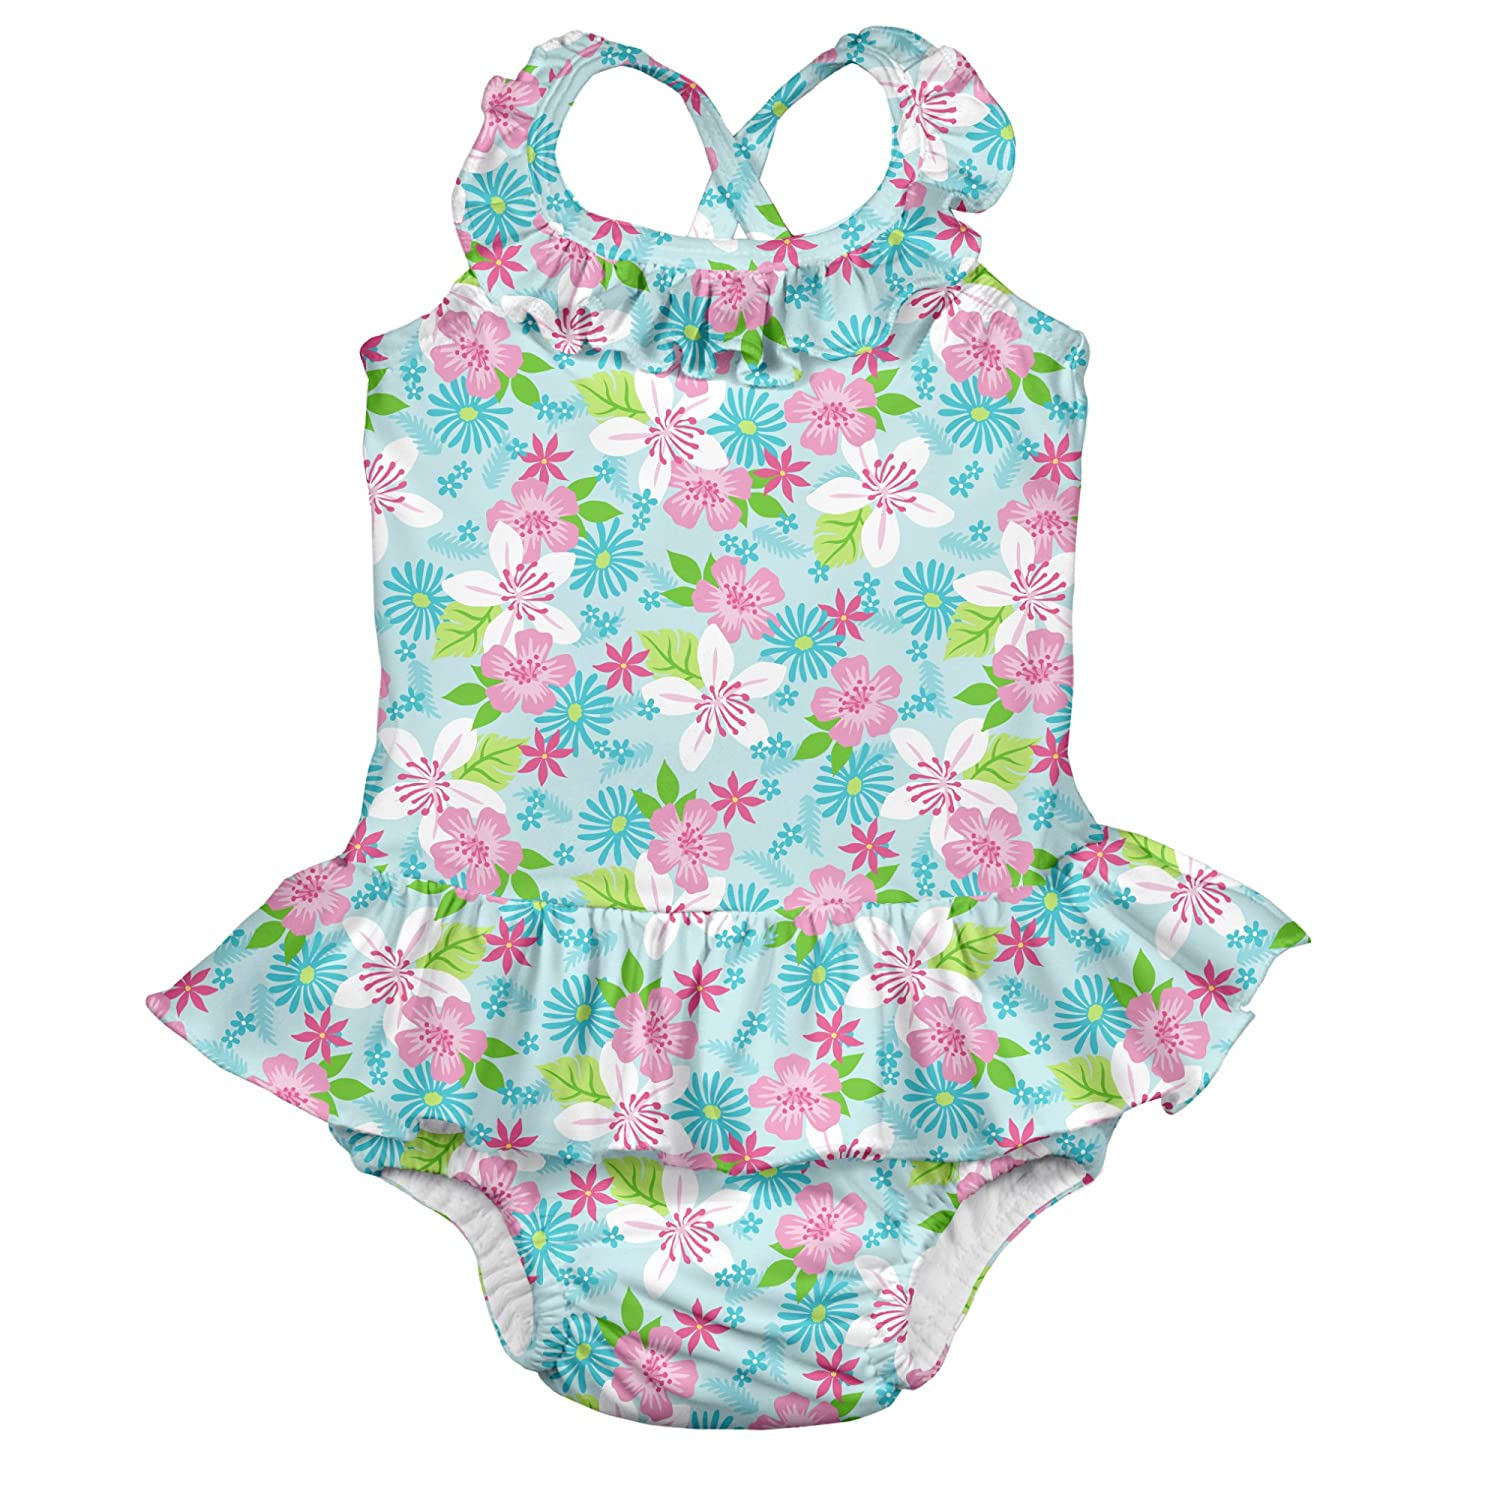 23eeb6058d Baby Girls 1pc Ruffle Swimsuit with Built-in Reusable Absorbent Swim Diaper,  Light Aqua Paradise Flower, 24month Online at Low Prices in India -  Amazon.in